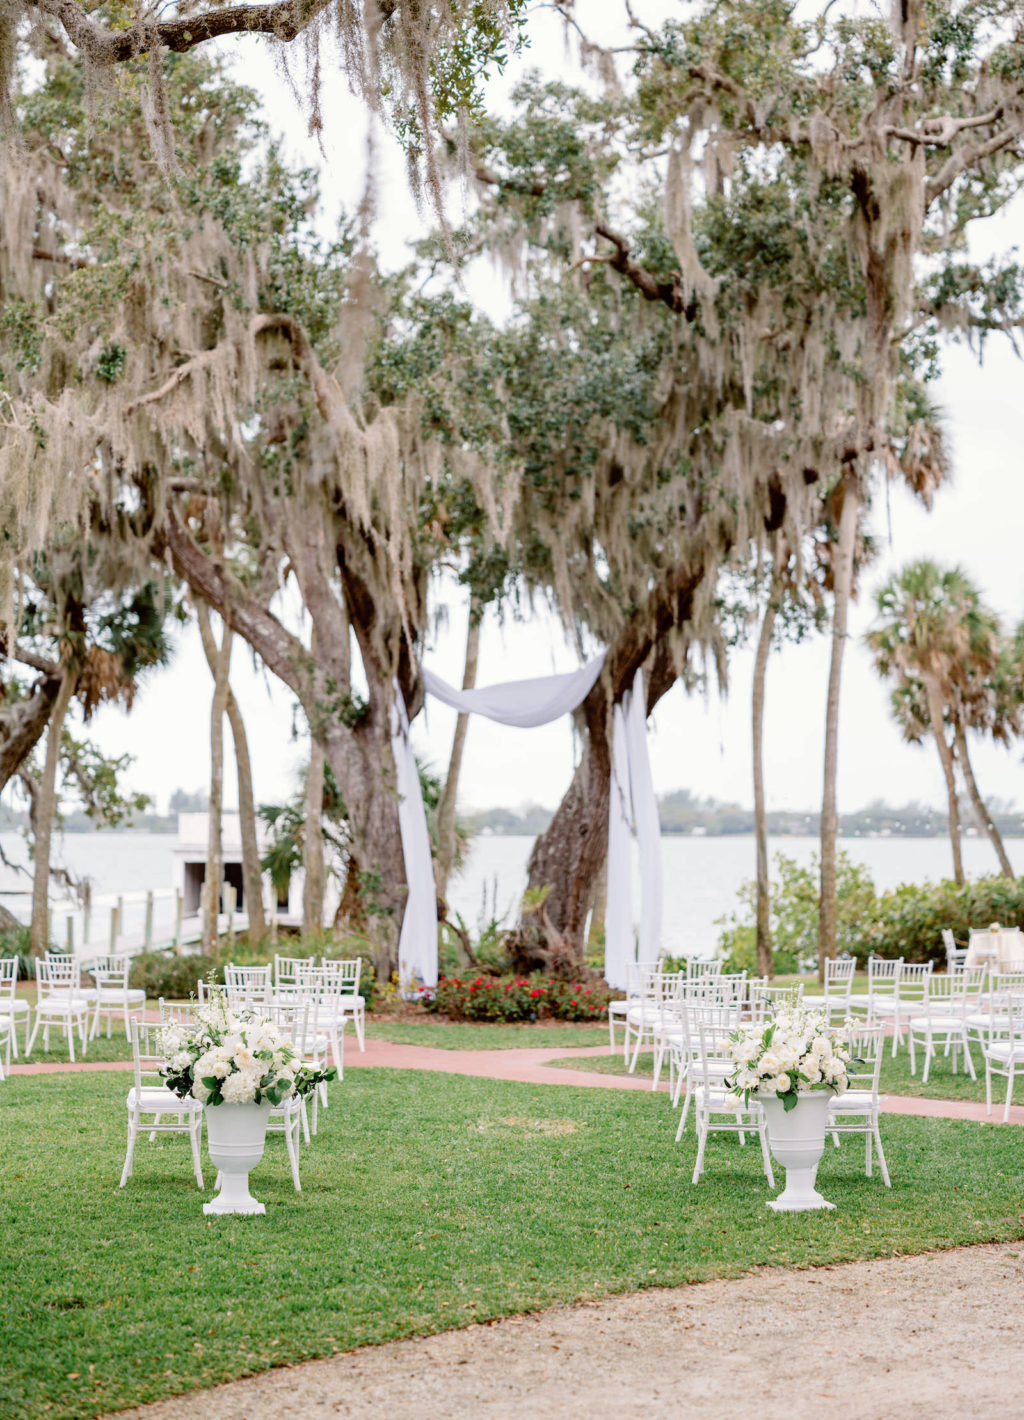 Elegant Luxurious Wedding Waterfront Ceremony Decor, White Chiavari Chairs, Large Vases with Floral Arrangements, Draping Hanging from Trees | Tampa Bay NK Productions Wedding Planning